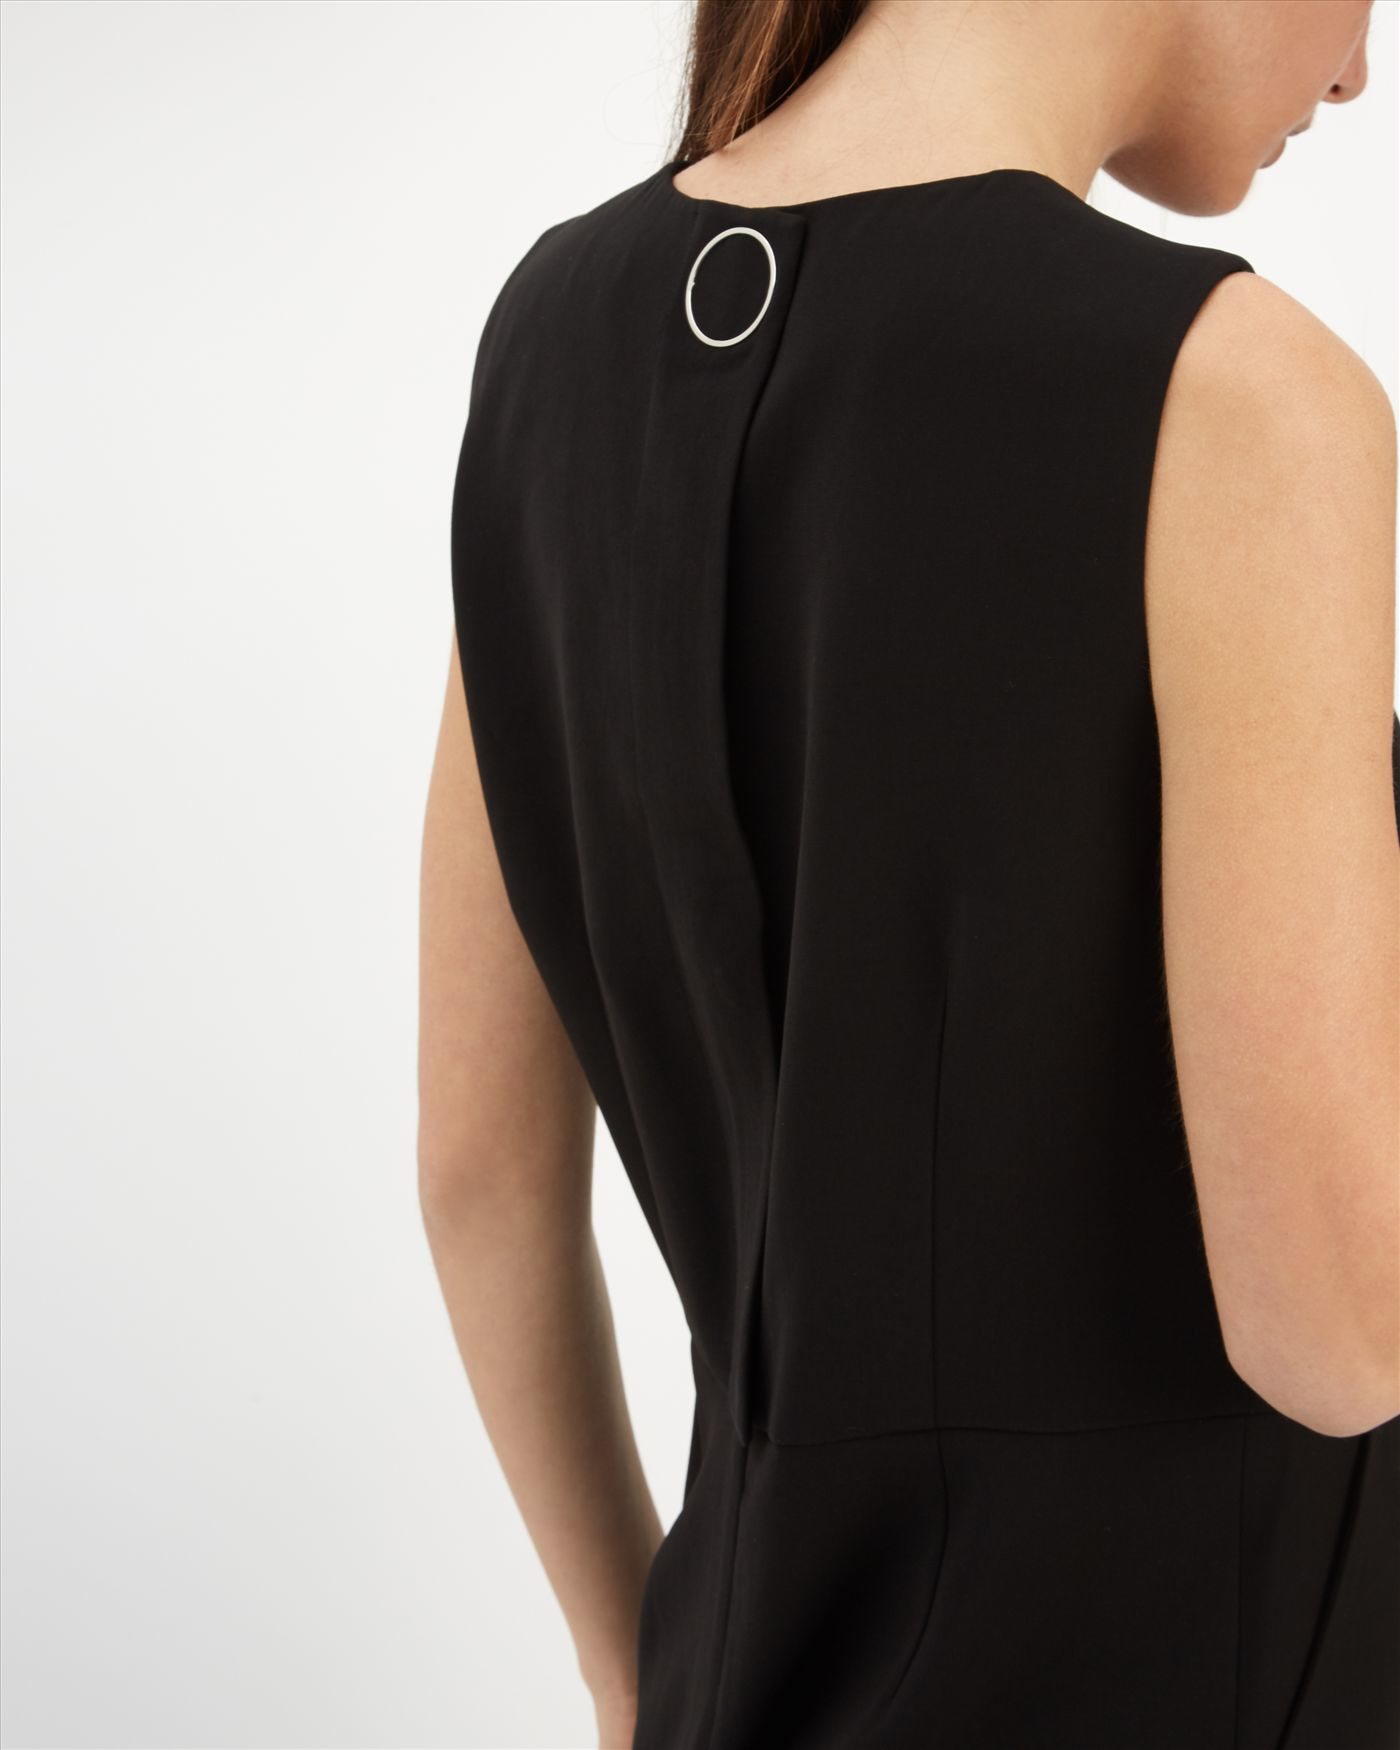 Perfect Black Jumpsuit From Stella Mccartney Featuring A Vneck Short Sleeves